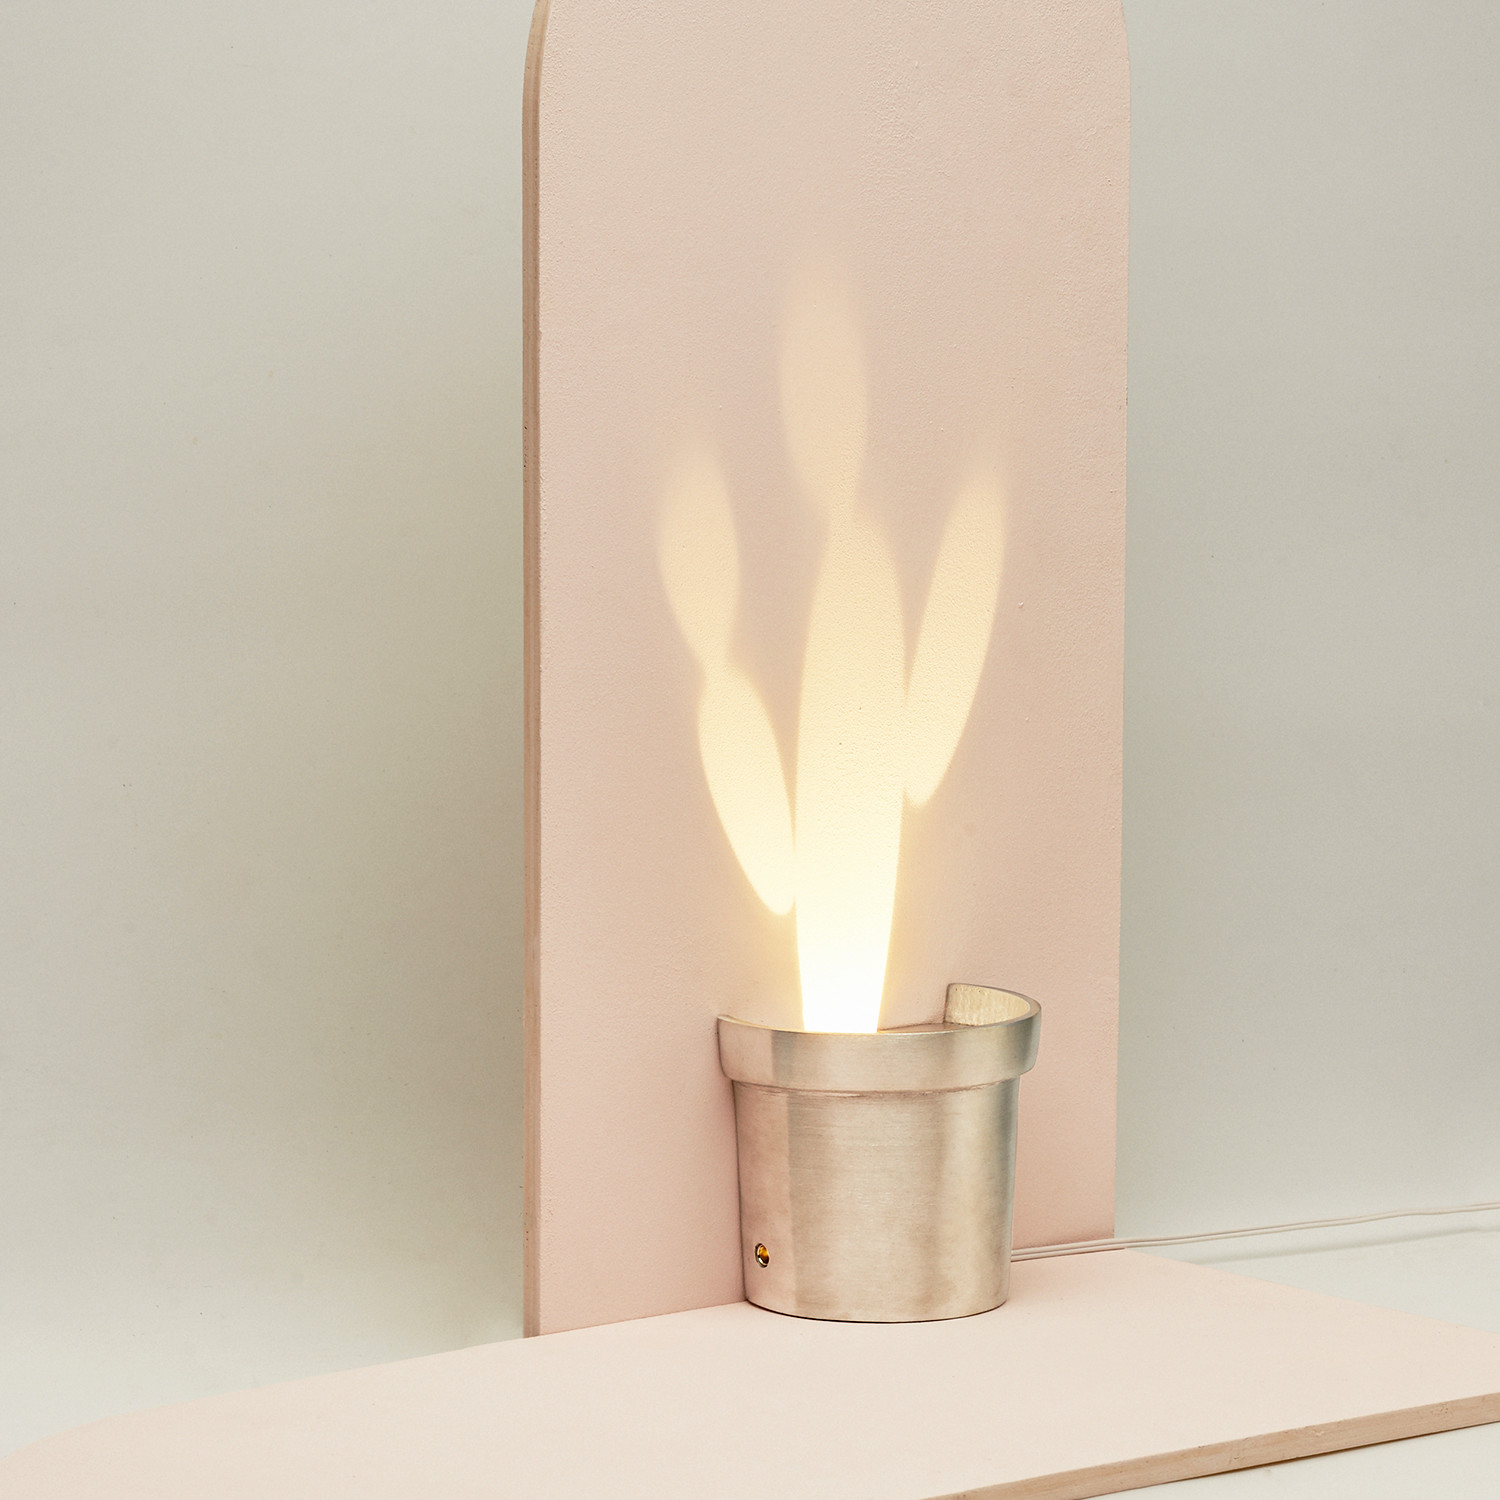 Cactus Verlichting Cactus Light Single Popup Lighting Touch Of Modern